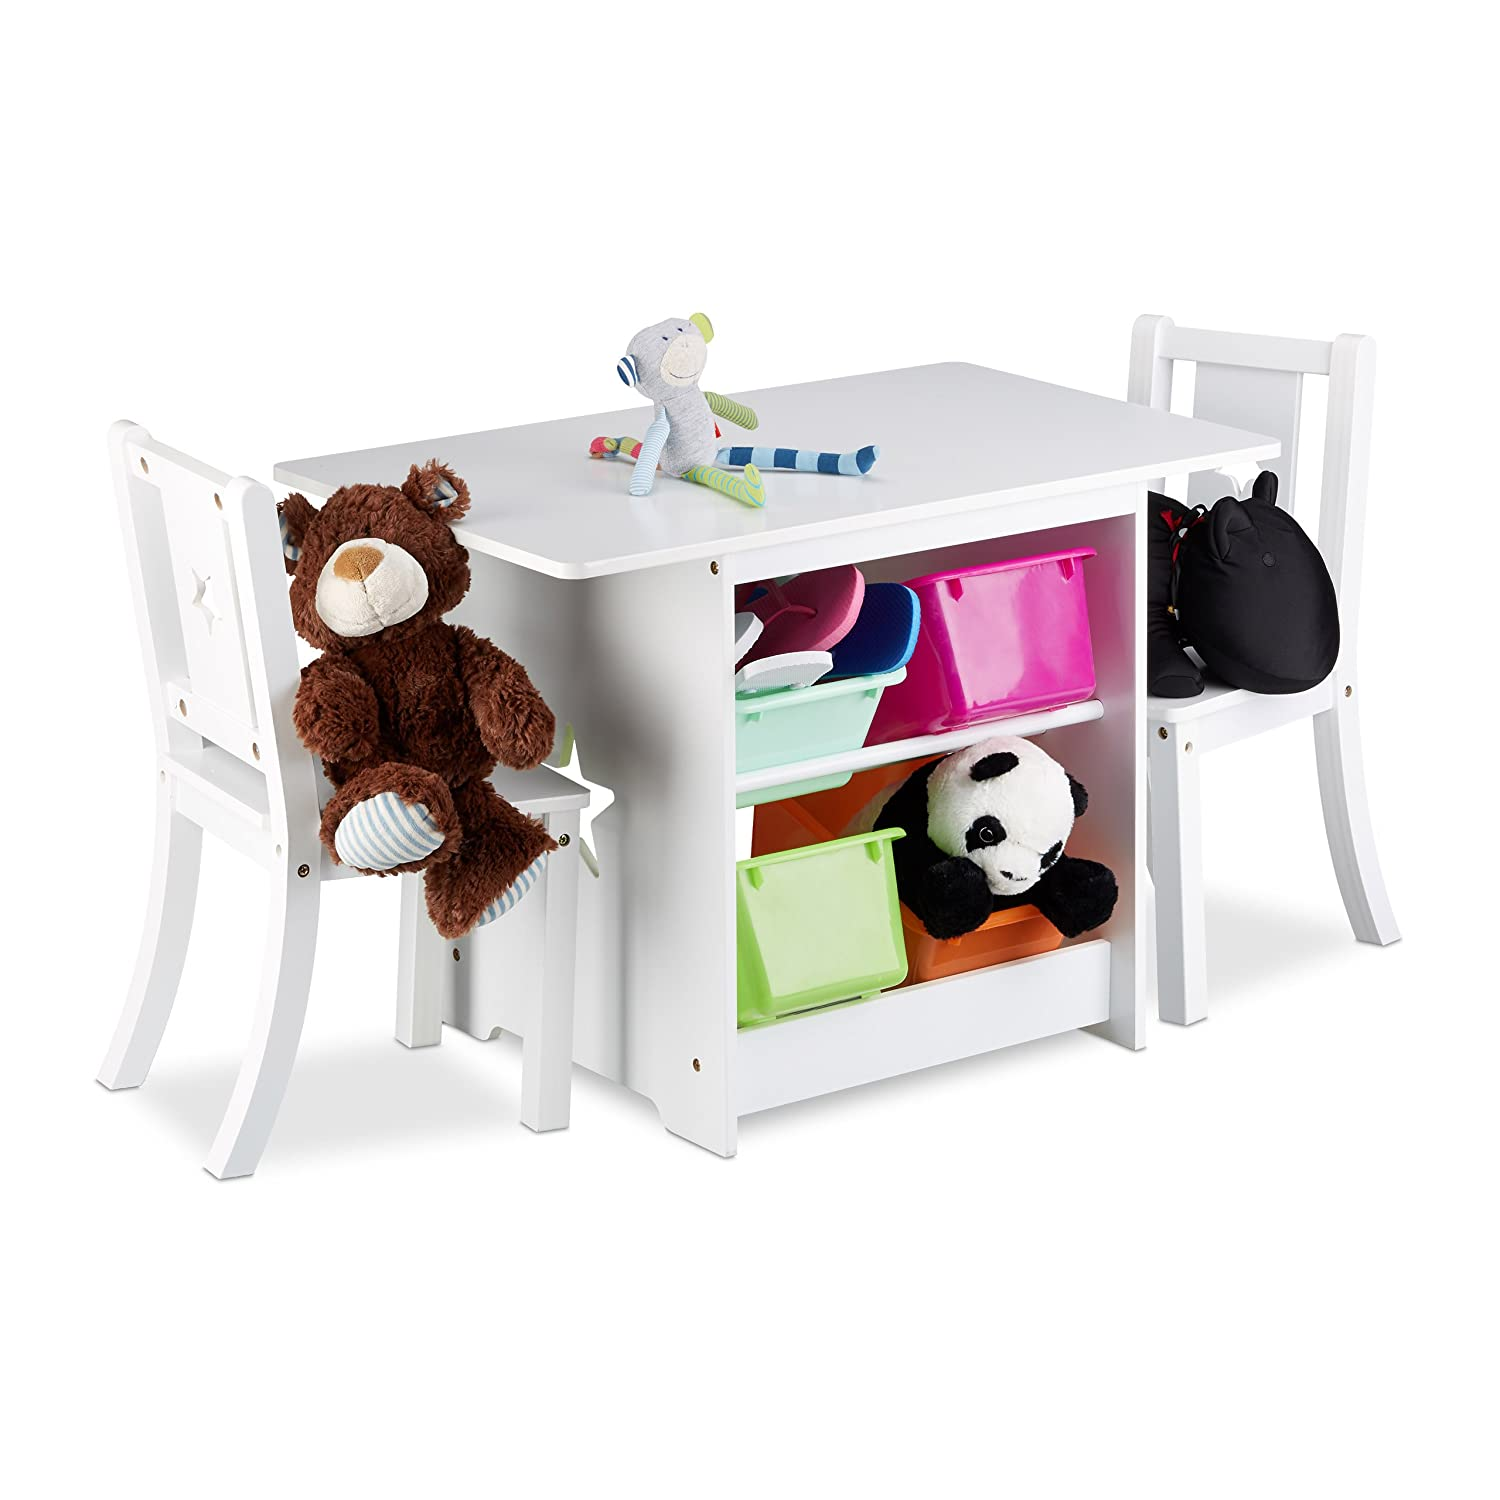 Möbel Sets für Kinderzimmer | Amazon.de | {Kinderzimmer set 73}